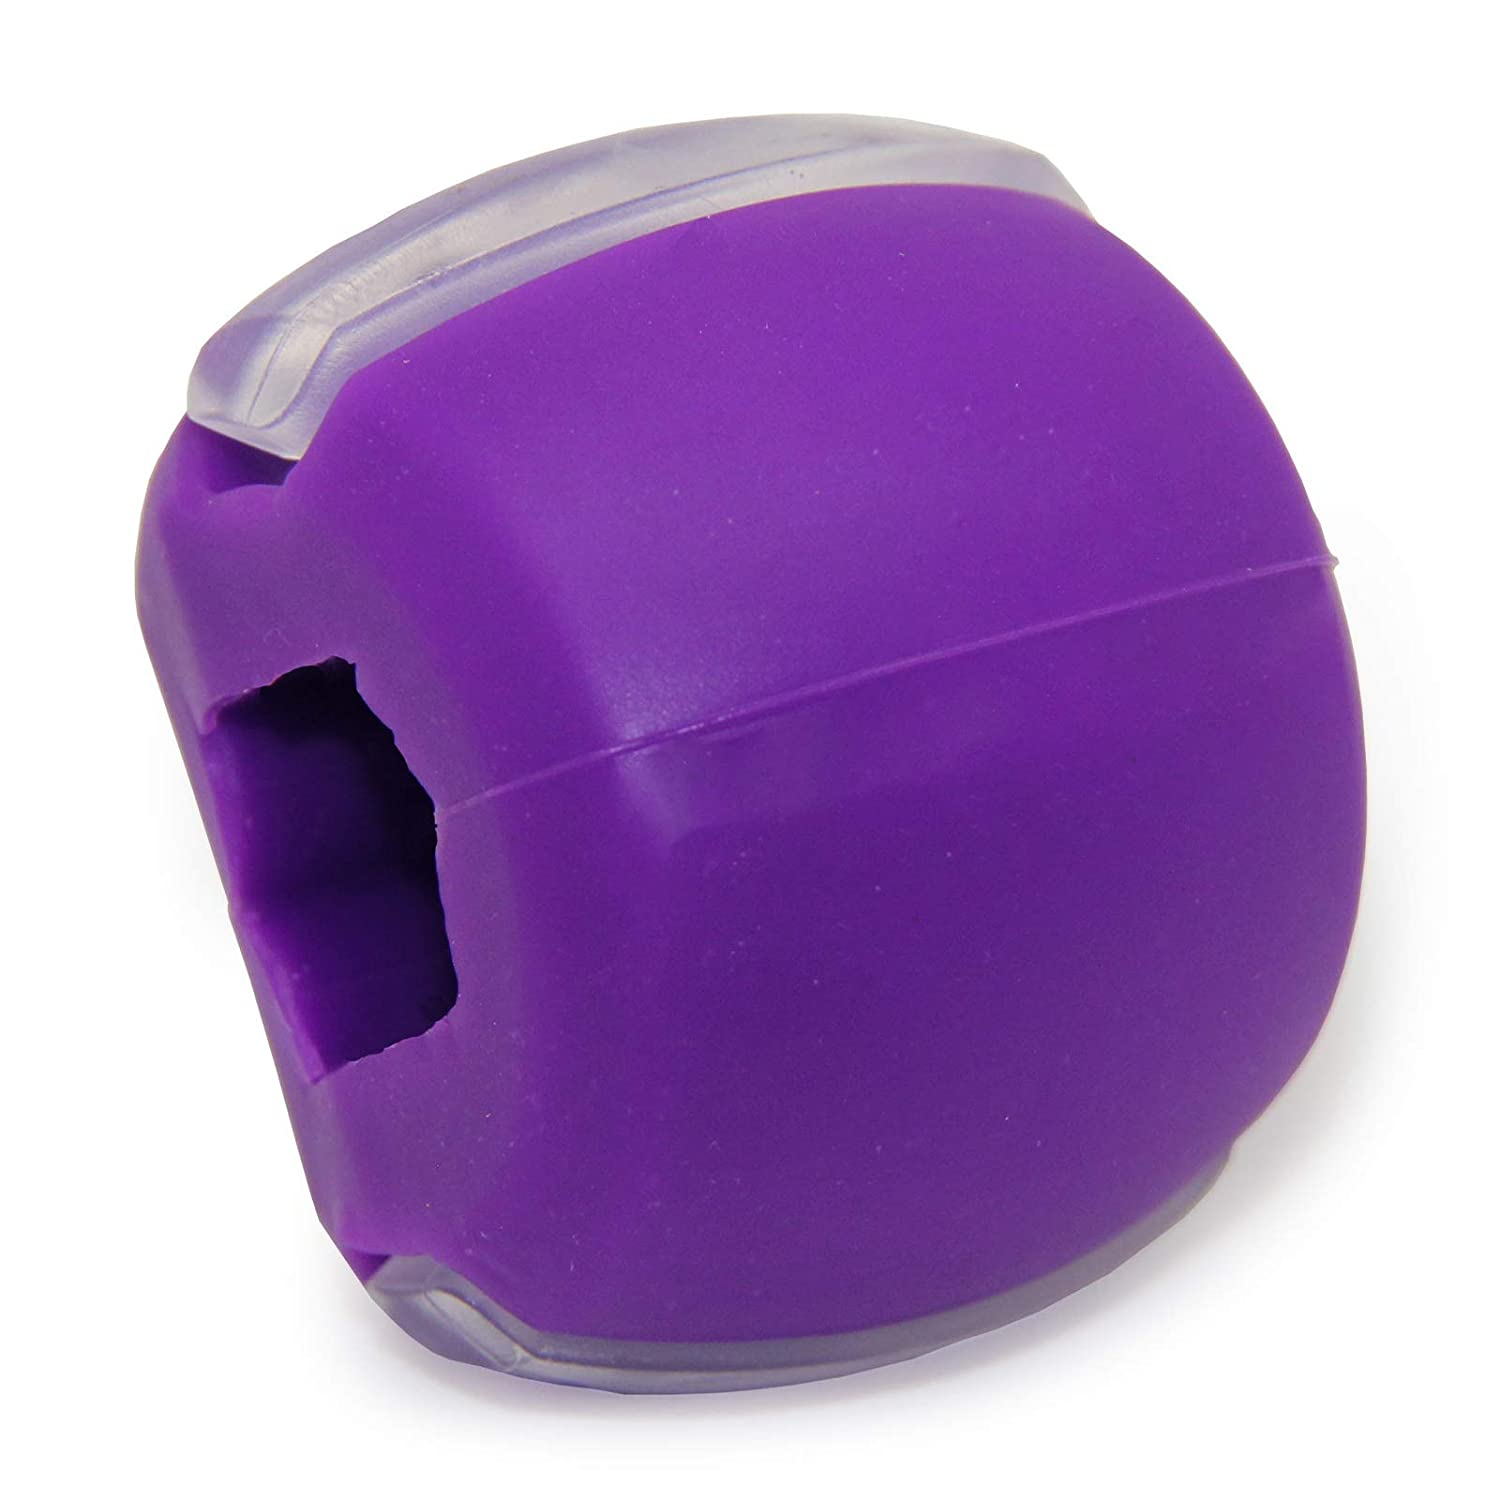 KLYJI Jaw Face Exerciser Ball Define Your Jawline Facial Neck Chin Exercise (Purple)